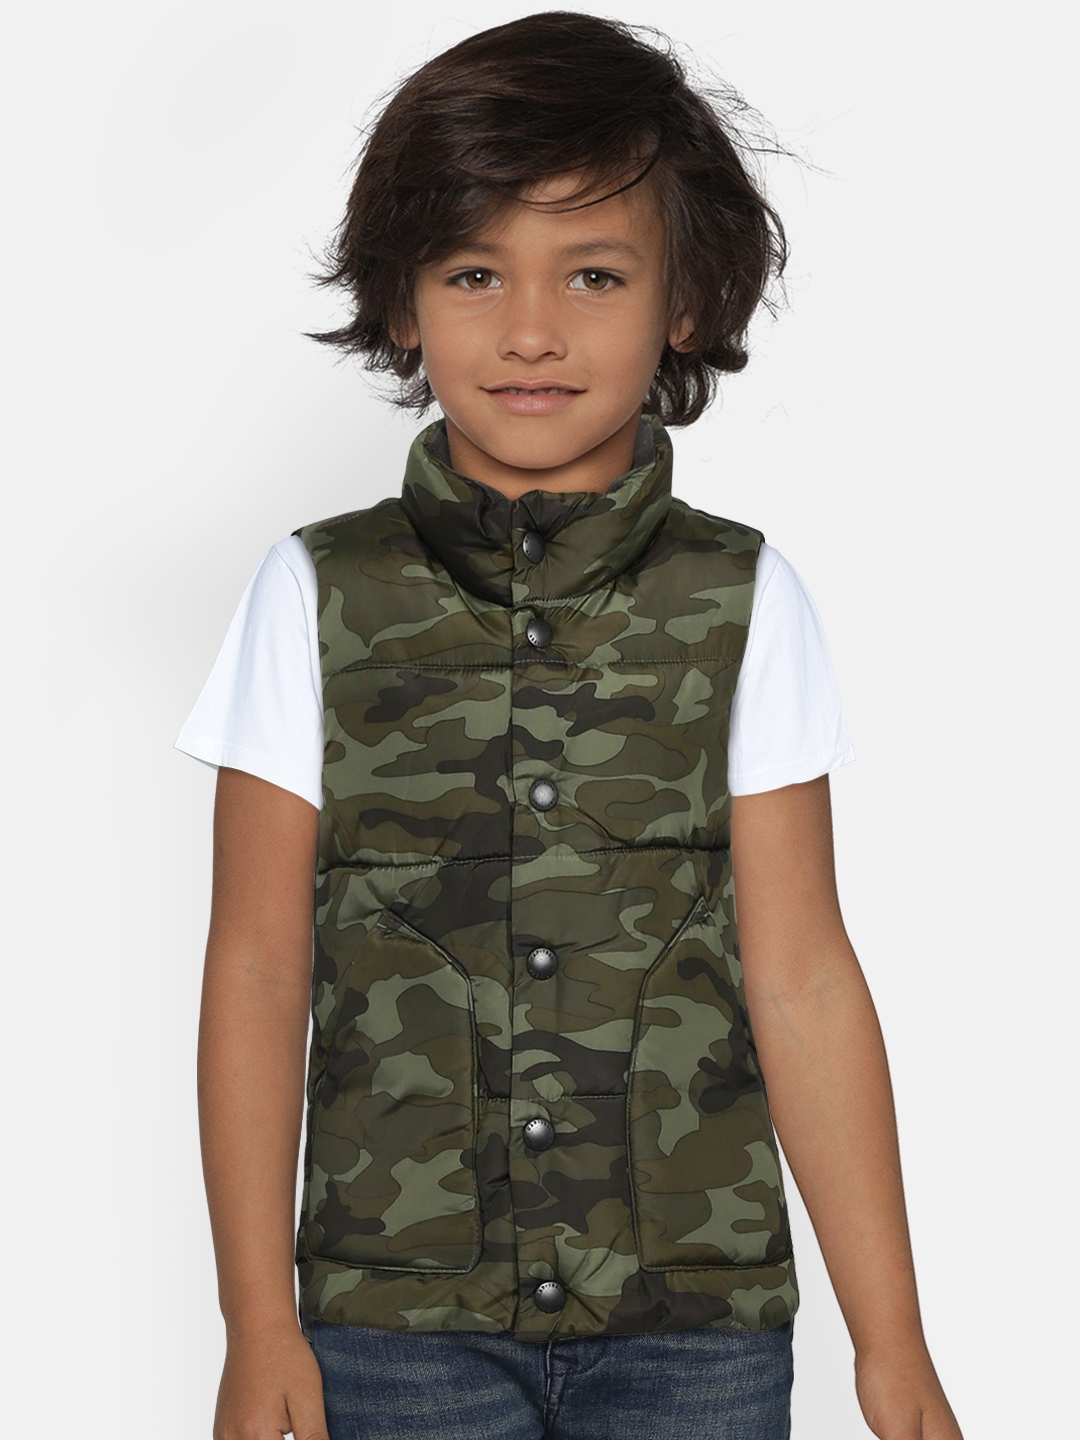 276d08d3410f9 Buy GAP Boys' Green Camouflage Puffer Vest - Jackets for Boys ...